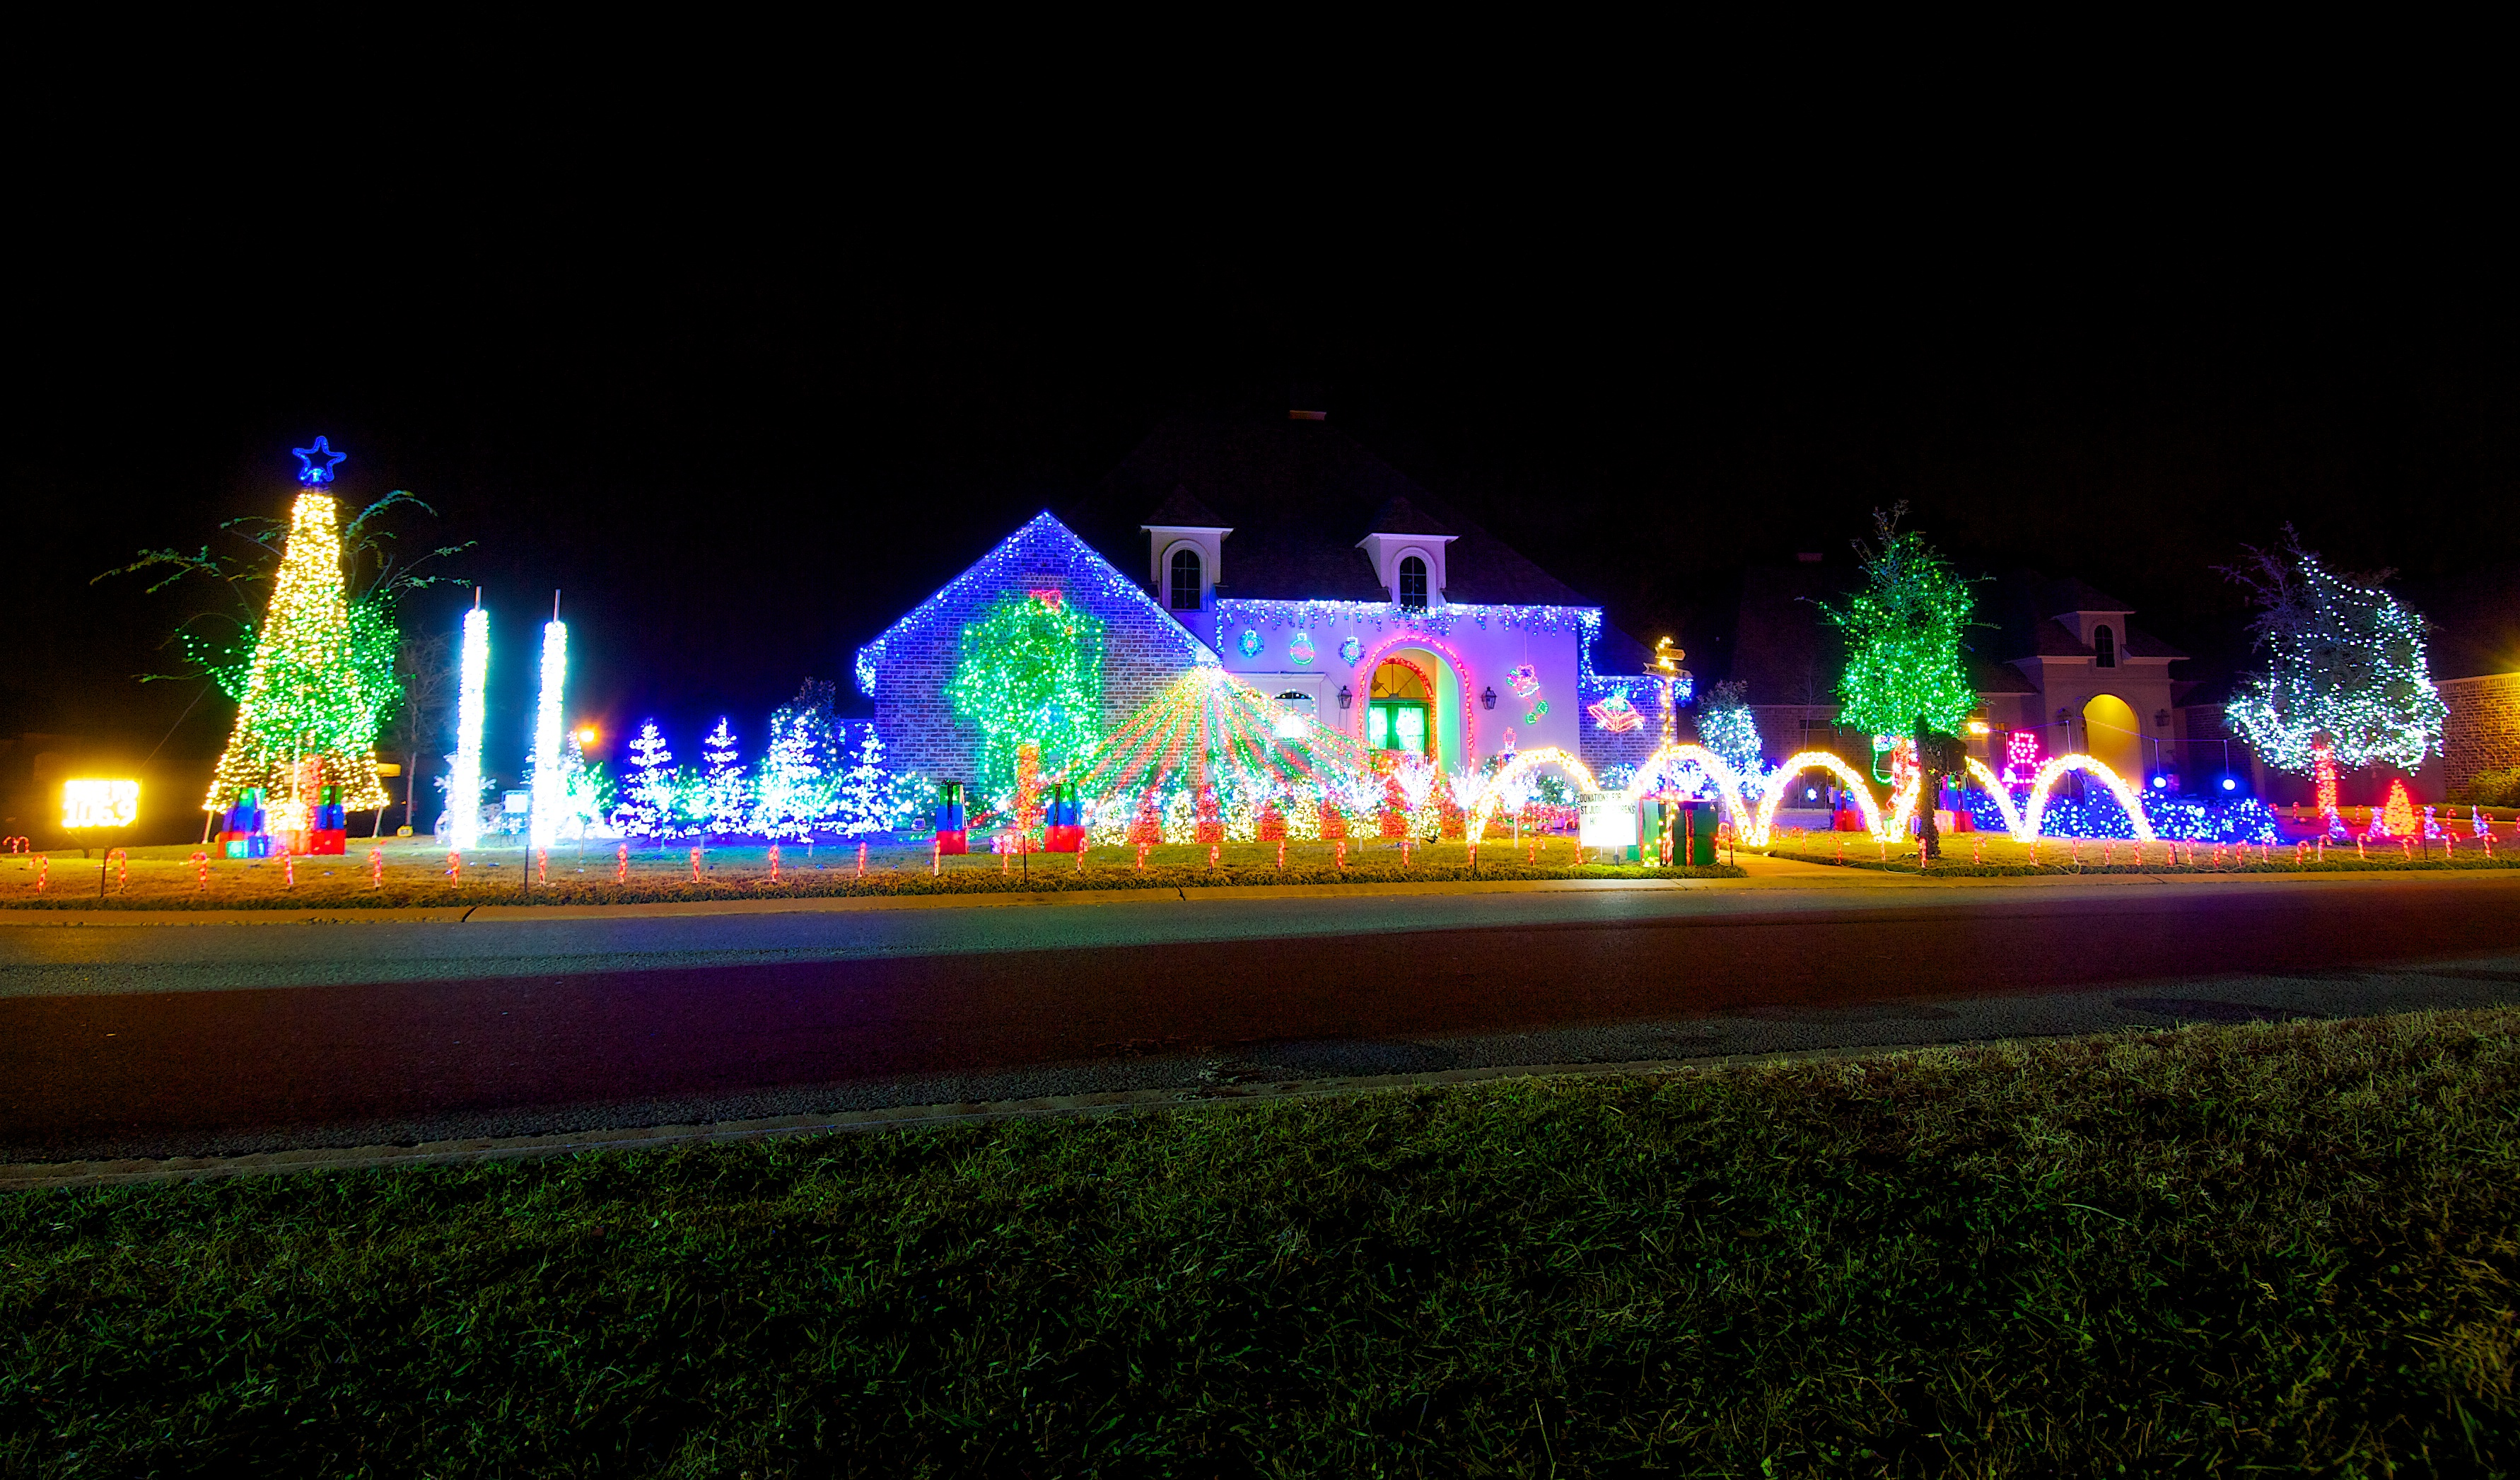 Cars line up nightly to see holiday lights at this Gonzales home - [225]